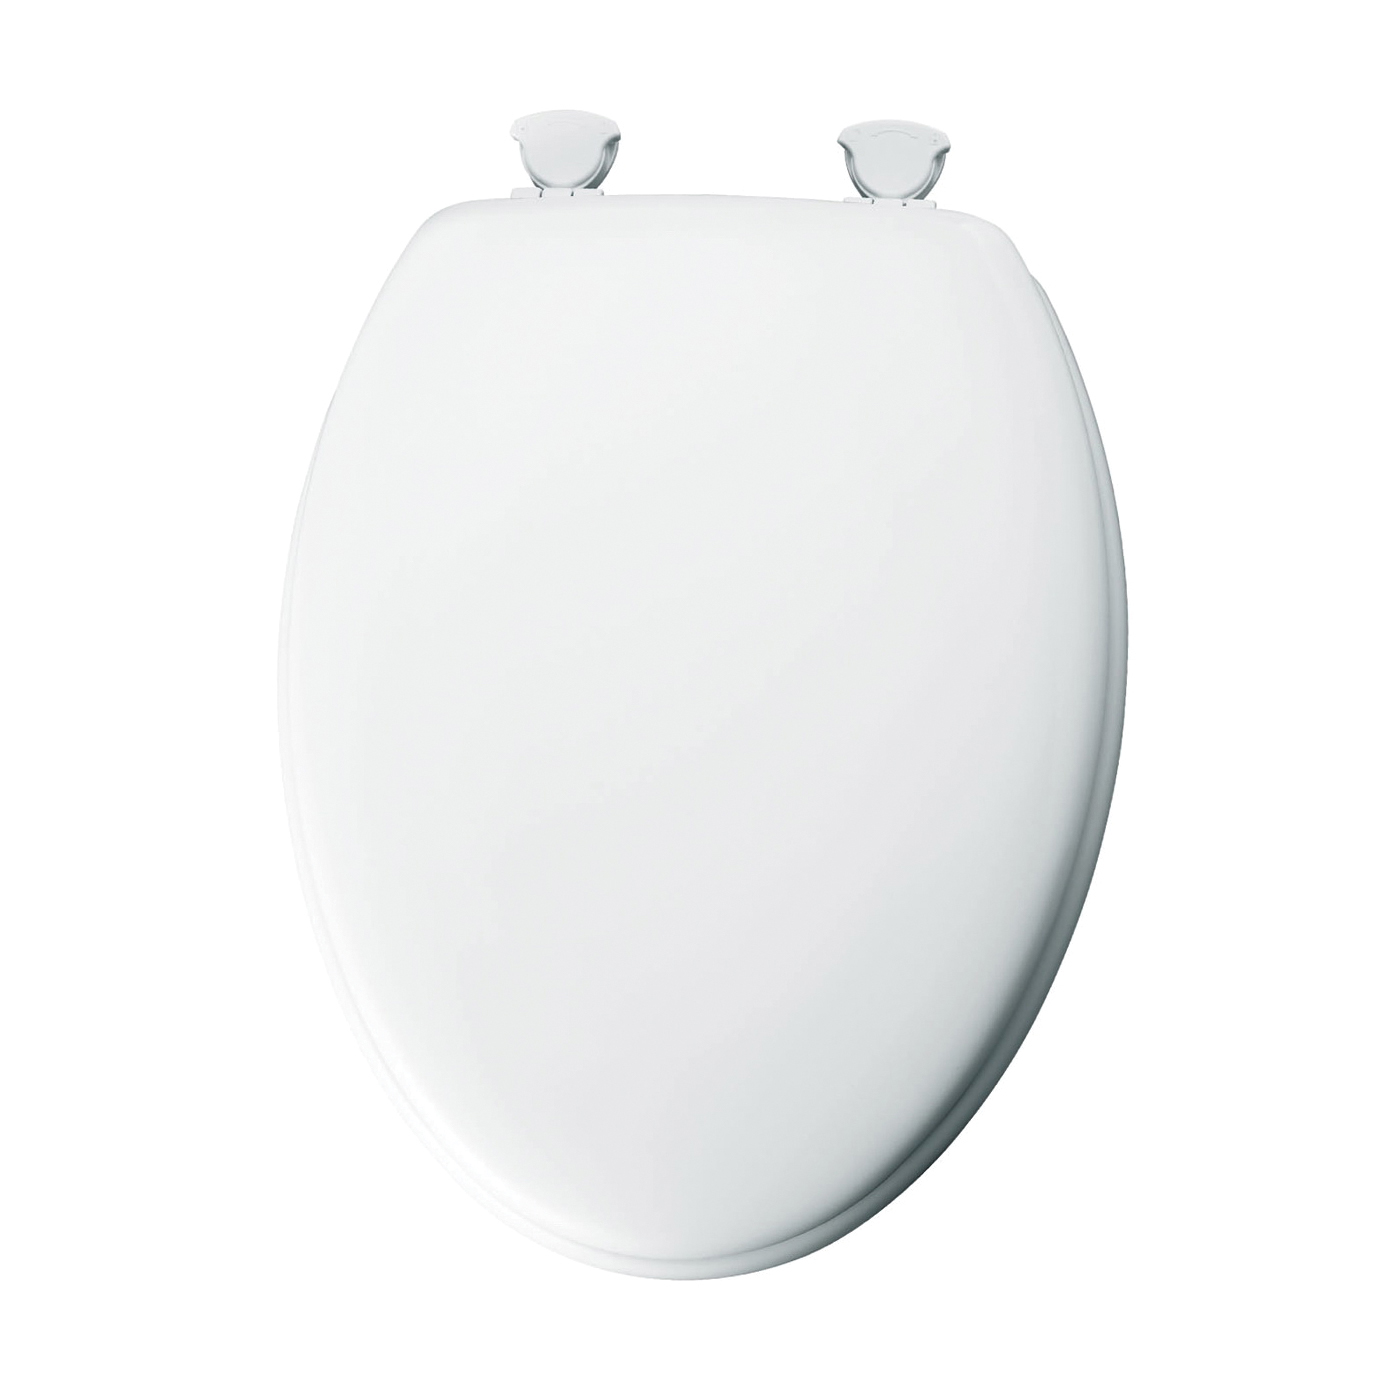 Picture of BEMIS 144EC-000 Toilet Seat, Elongated, Molded Wood, White, Twist Hinge